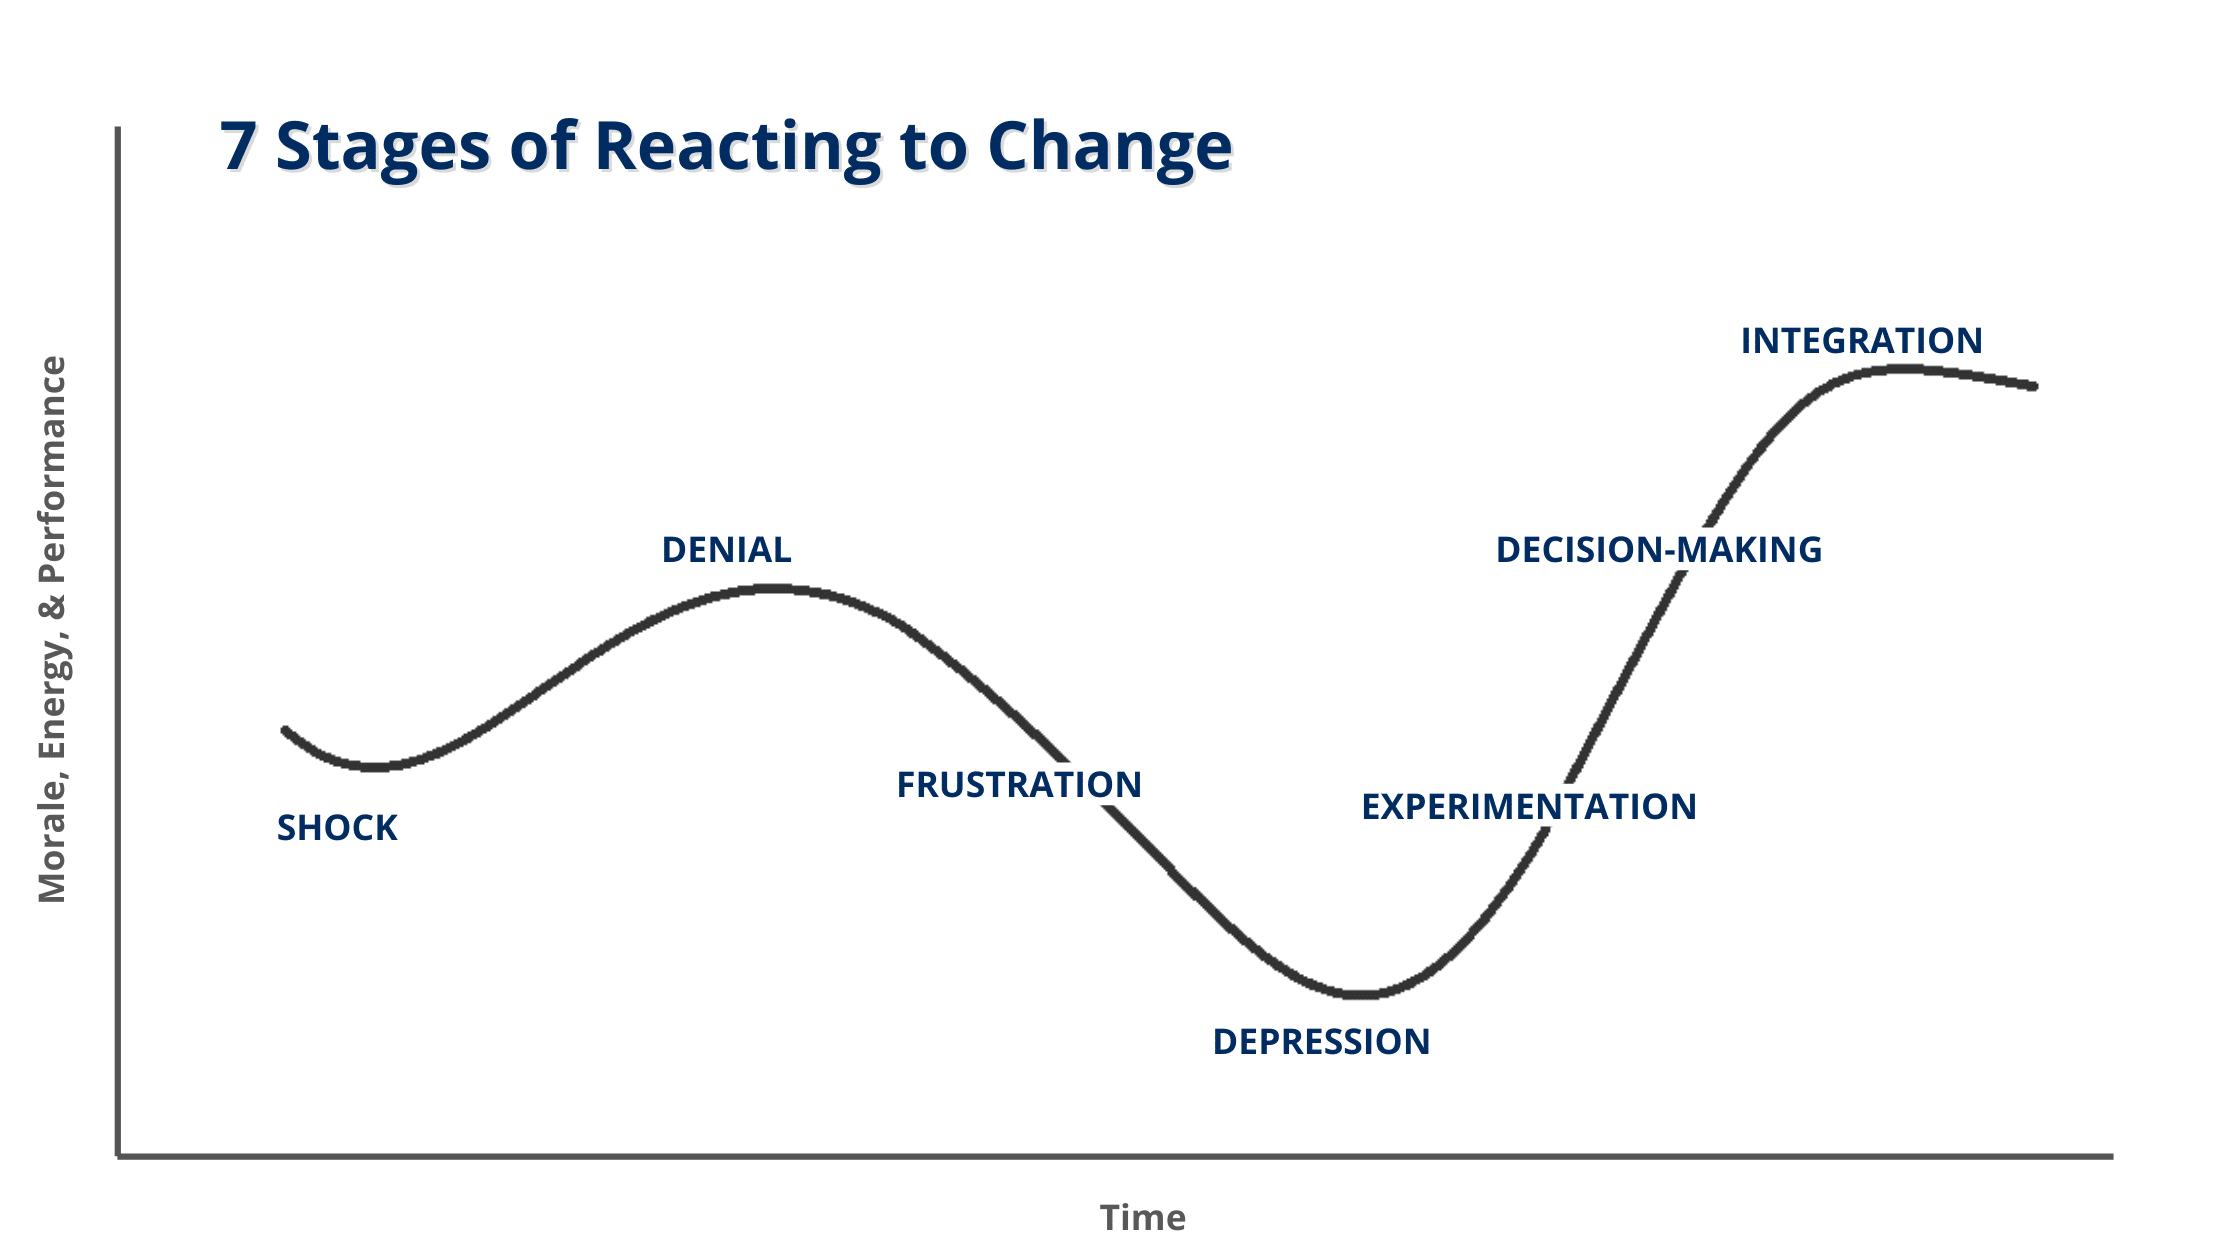 7 stages of reacting to change